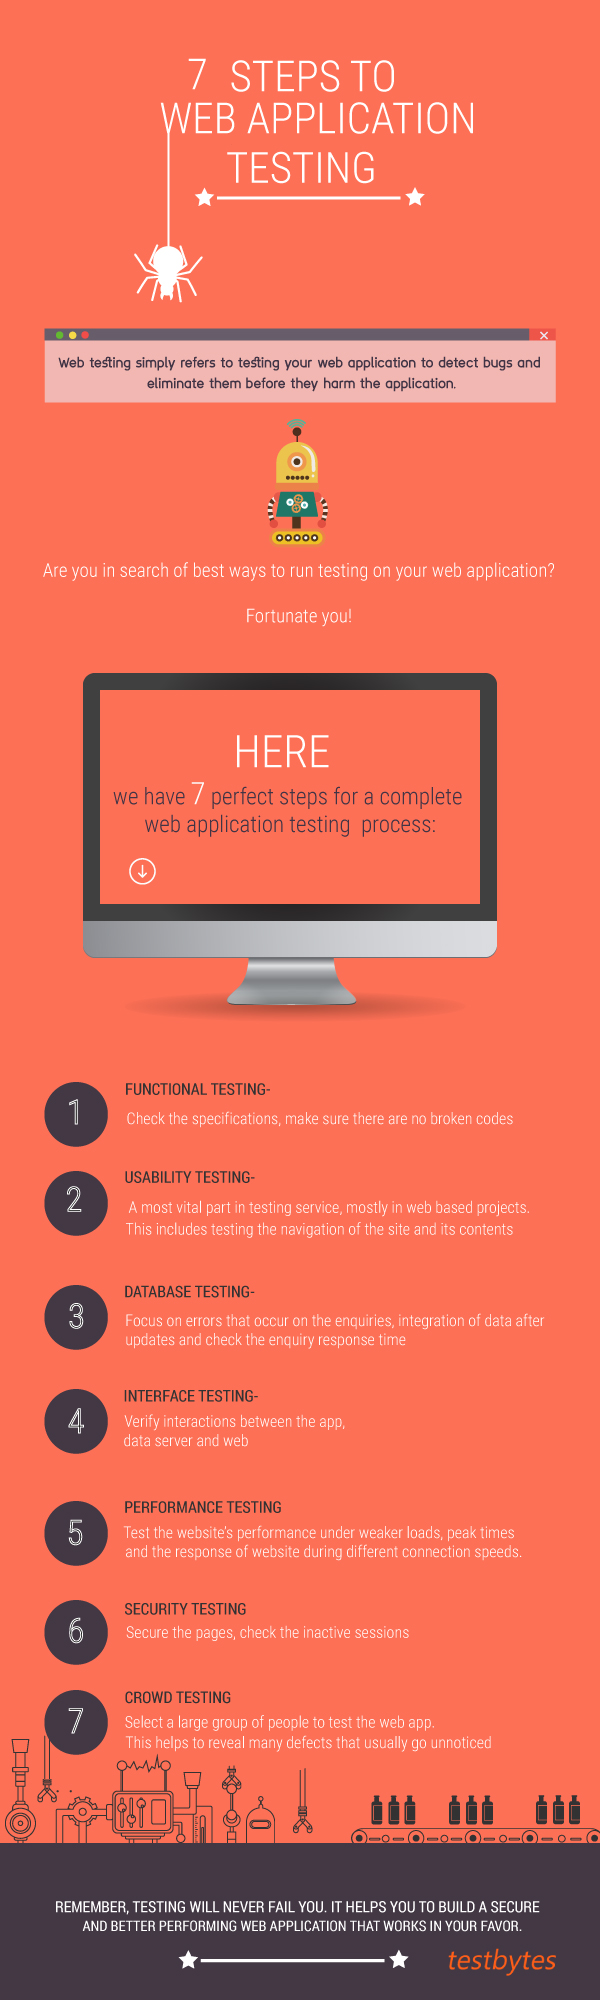 7-Steps-To-Web-Application-Testing-Infographic